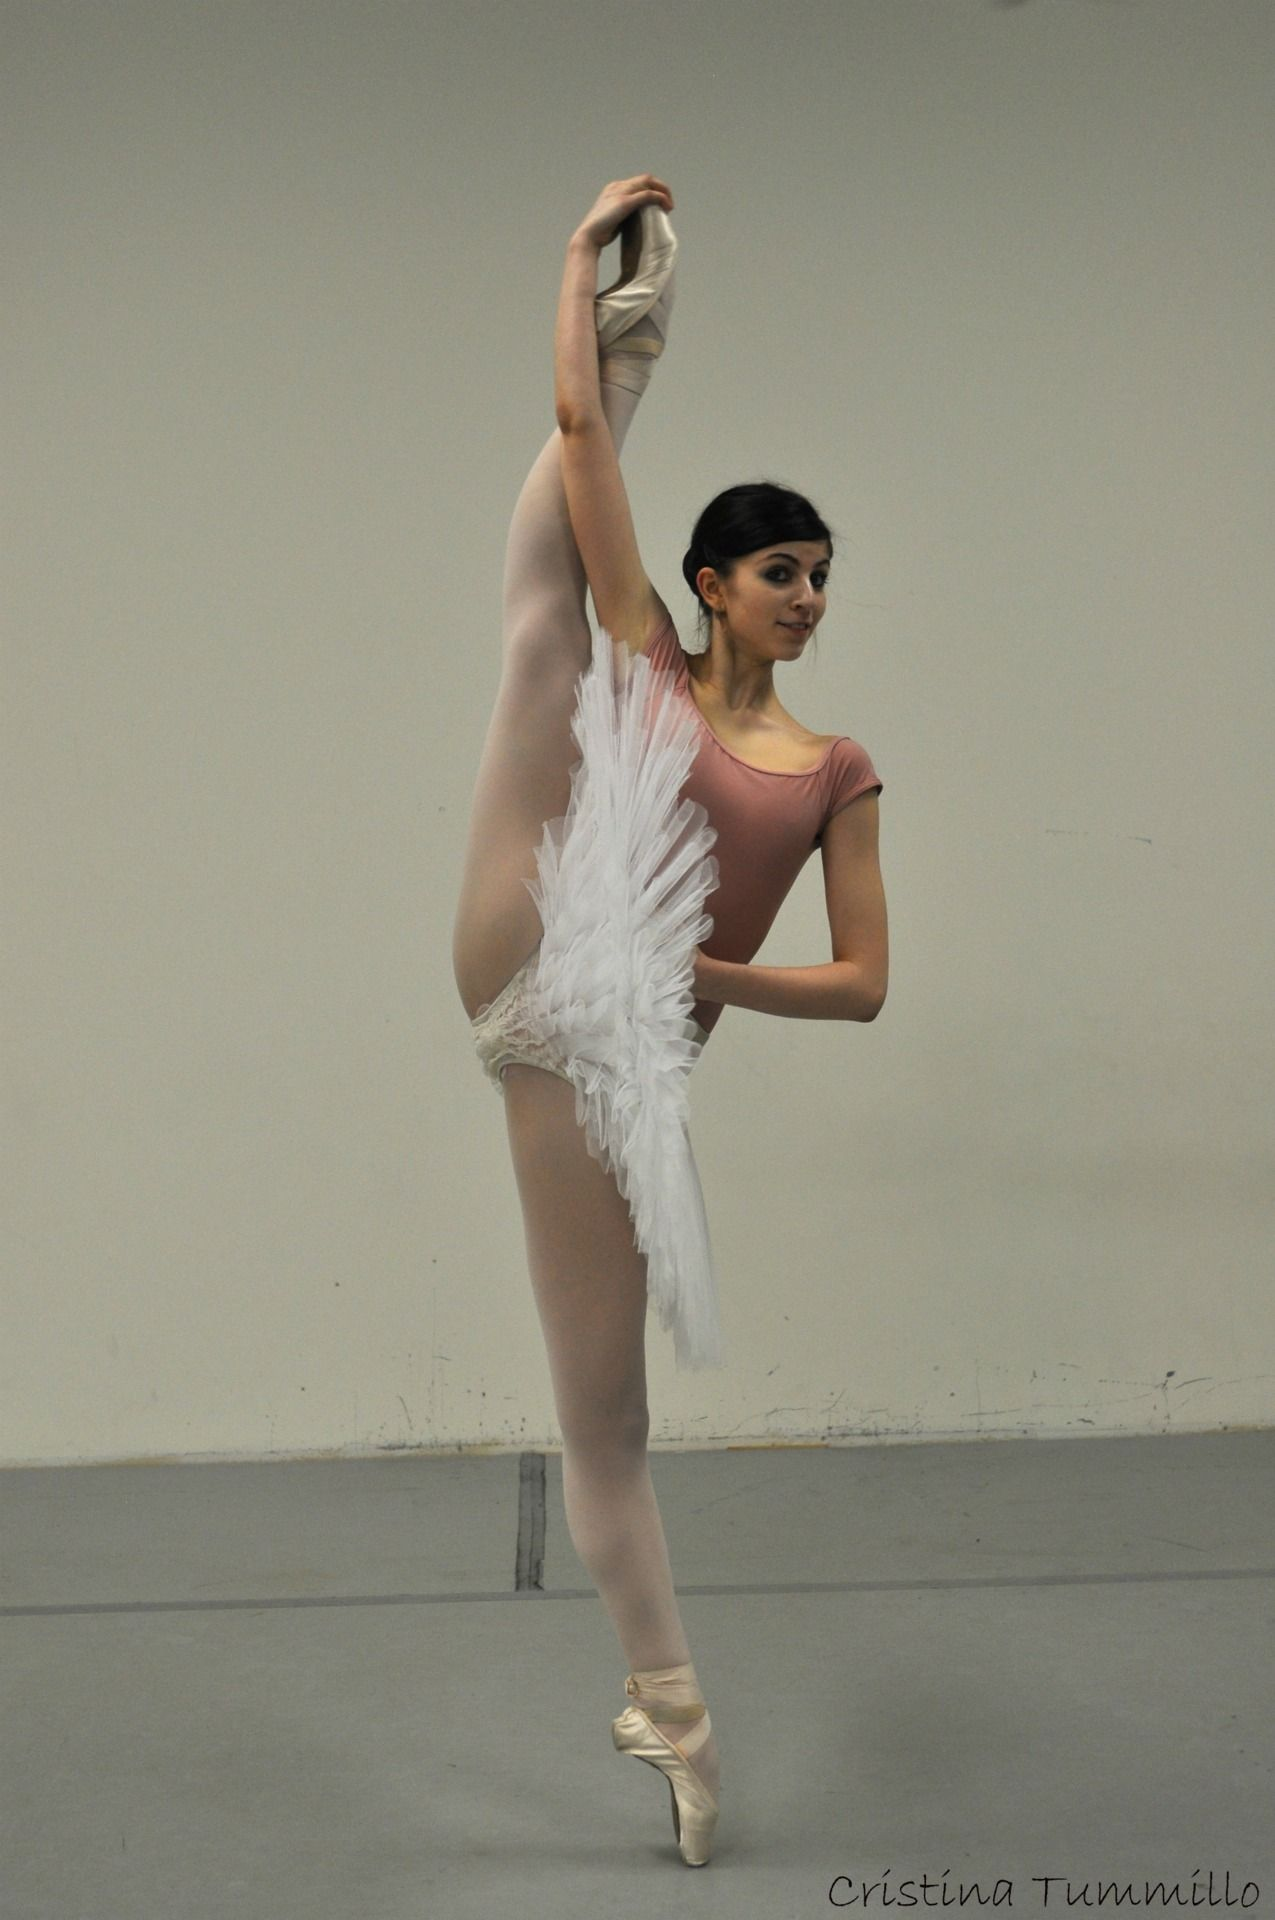 Picture Taken By Cristina Tummillo Love4ballet2 Dance Dance Photography Dance Pictures